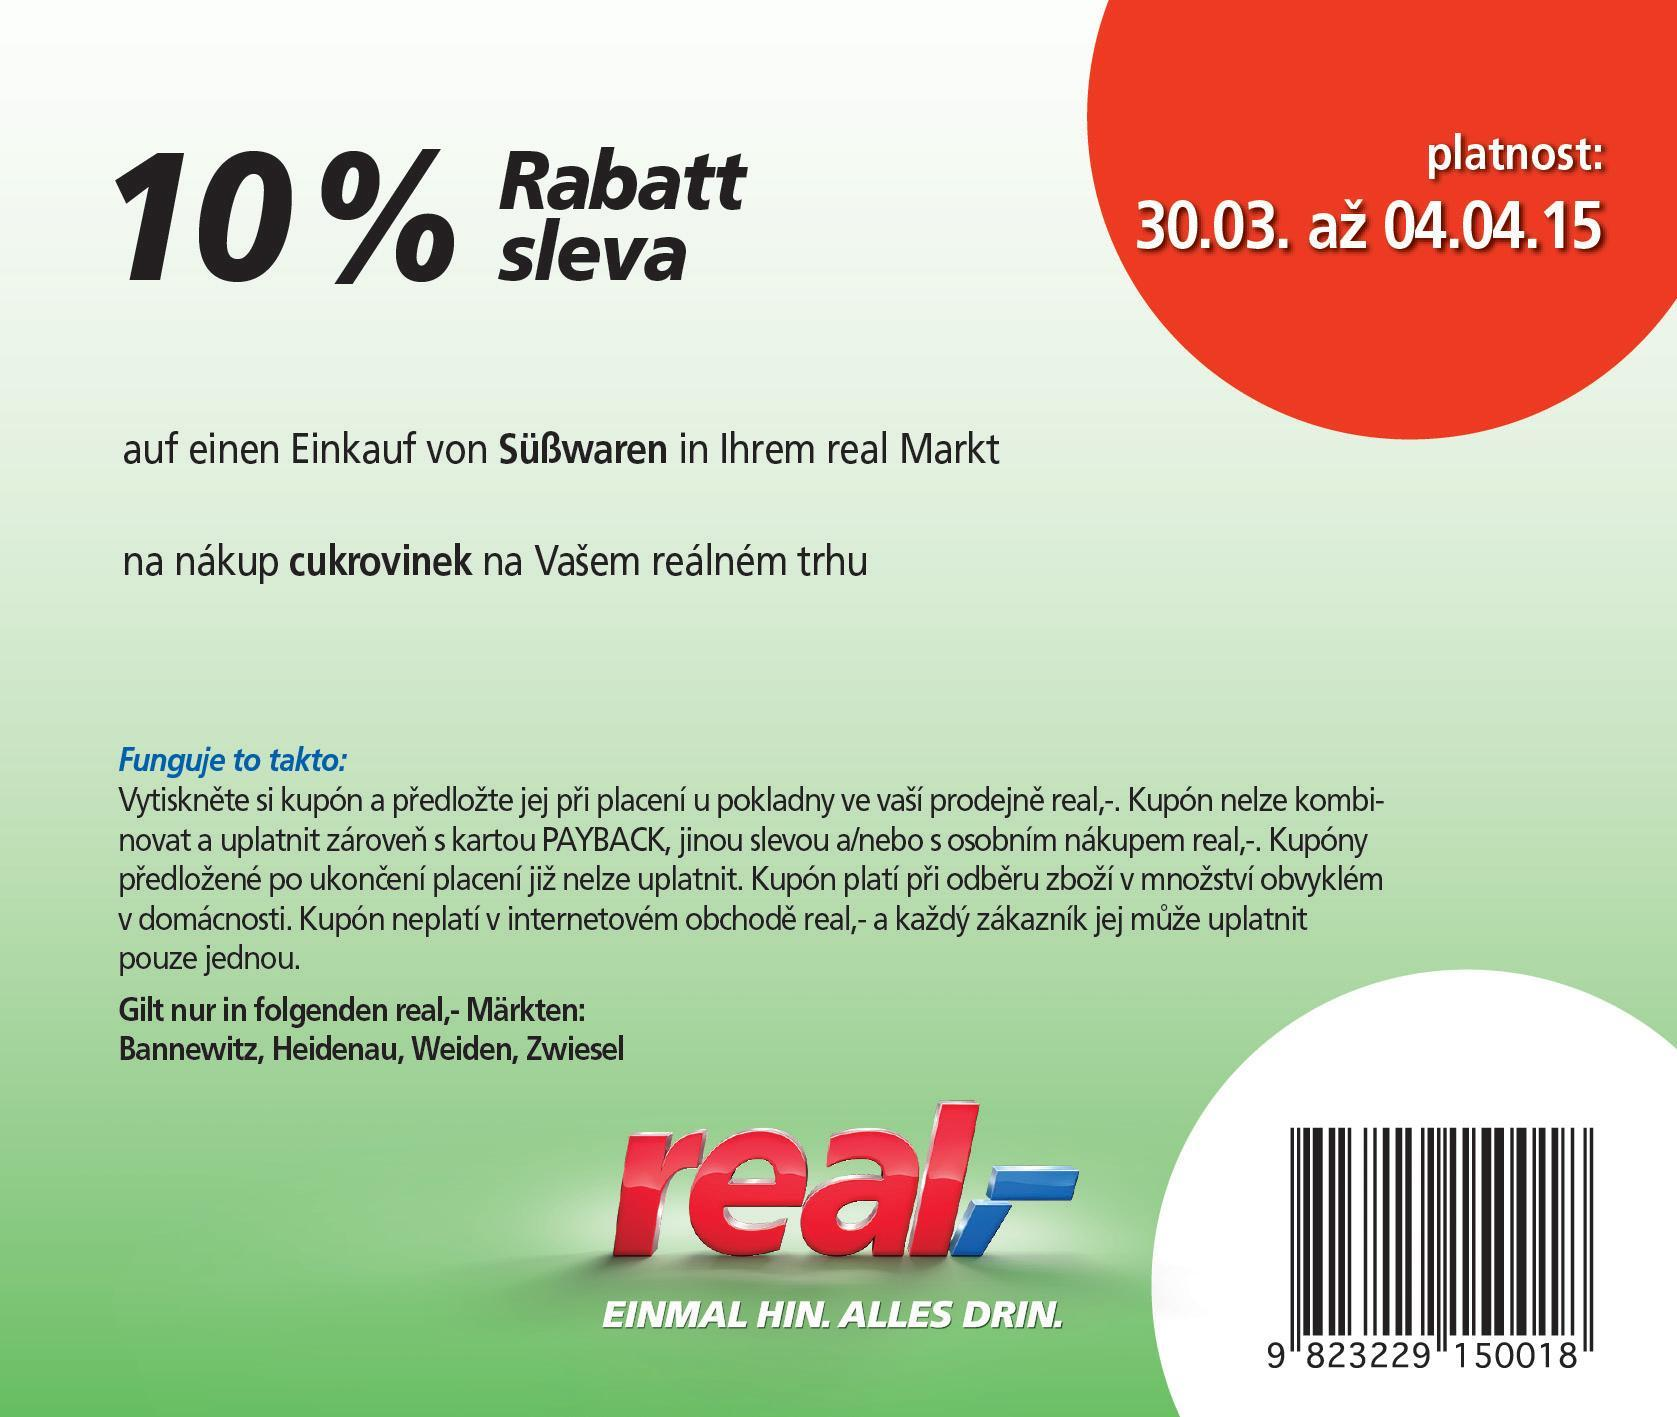 coupons_apr_2015_cz-pfaznt.jpg